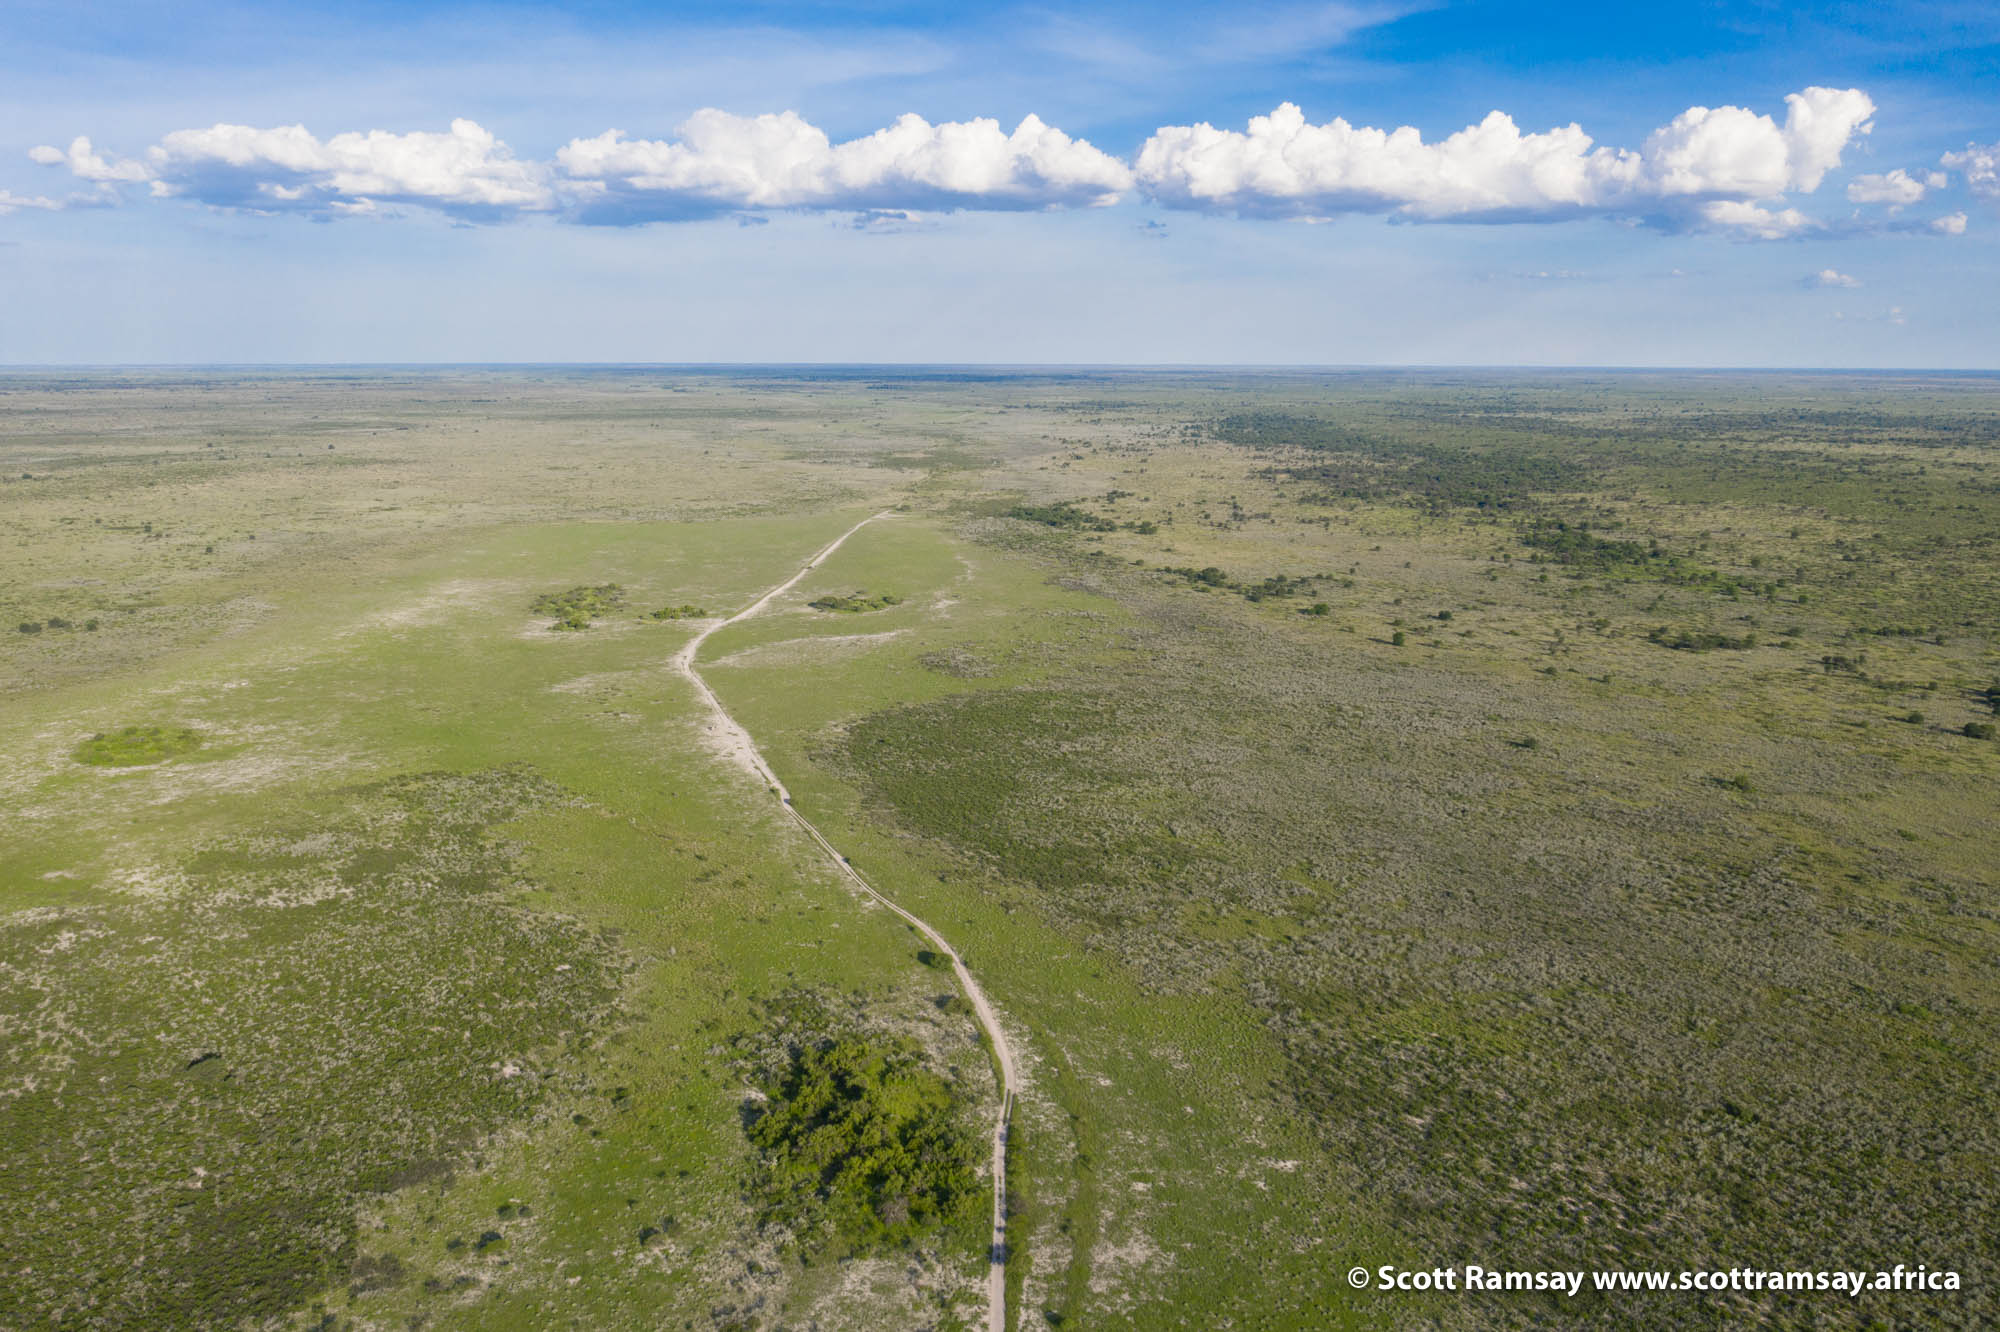 And yet only 20-odd kilometres west, near Letiahau Pan, there had been far more rain, and the landscape has responded with a green blanket of grass.